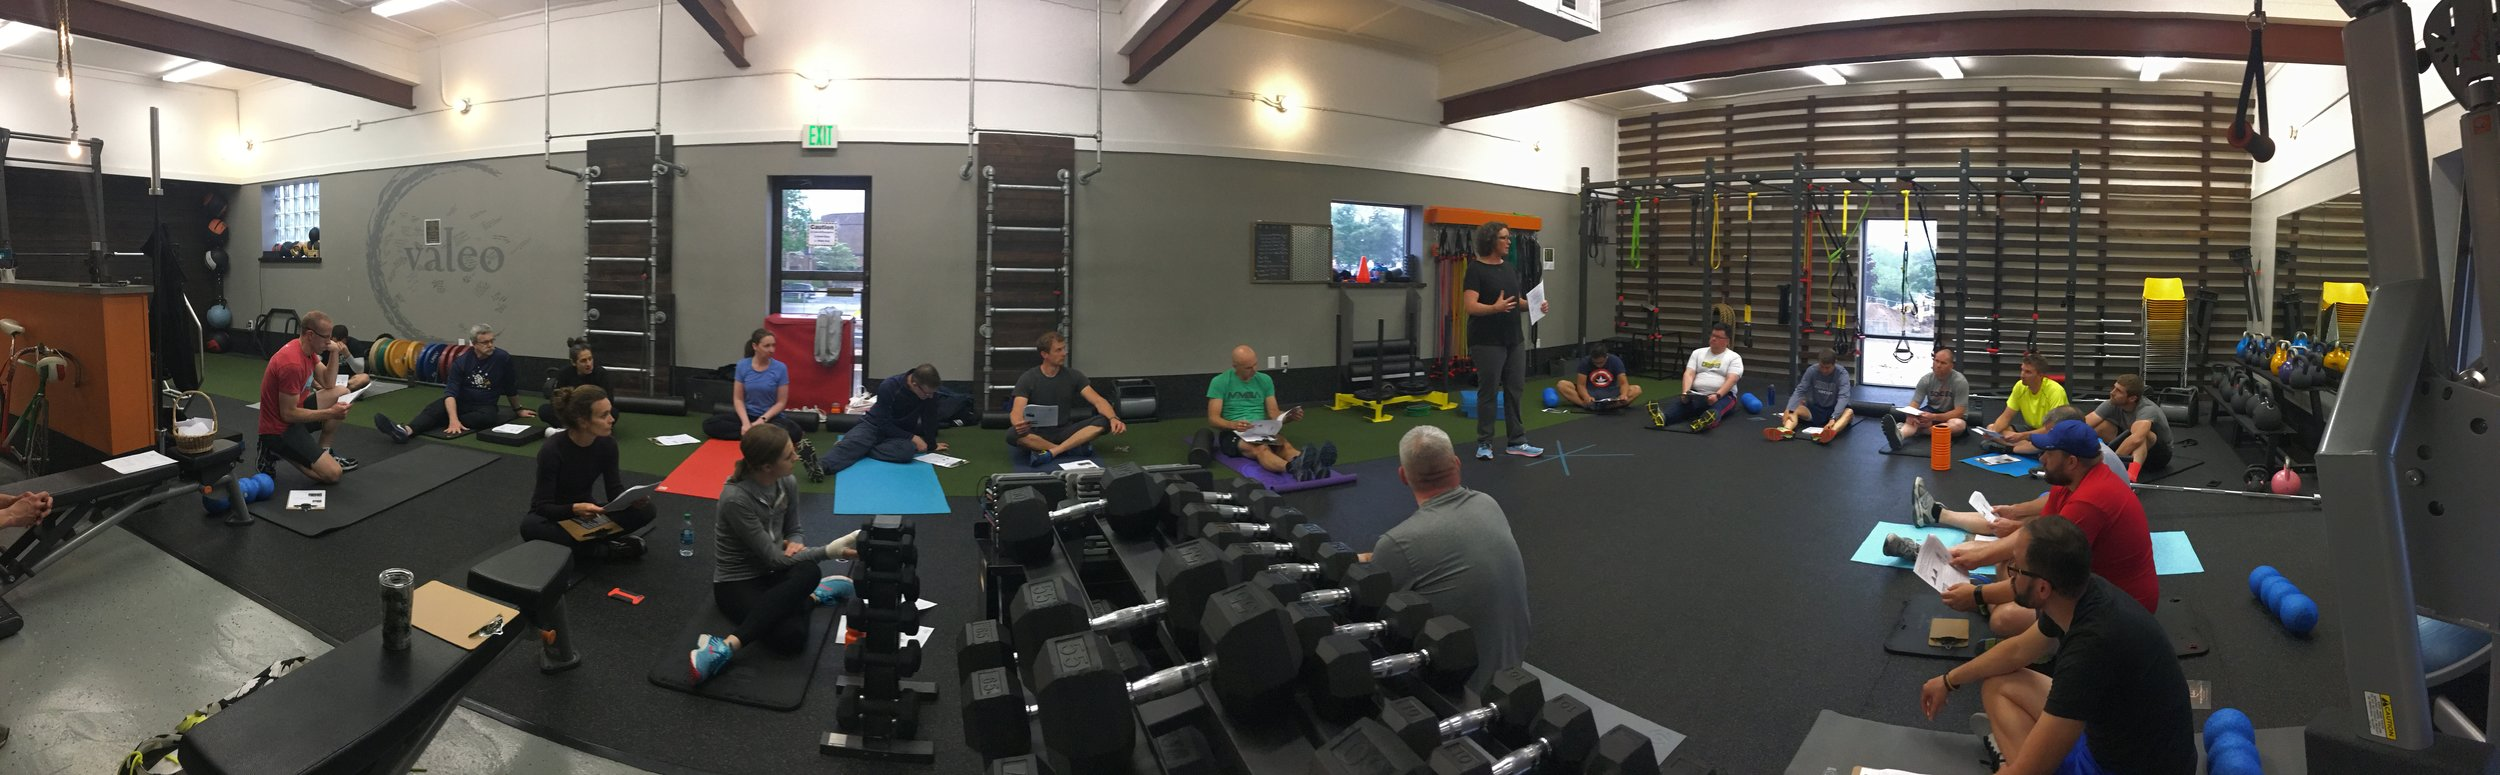 MOBILITY AND FUNCTIONAL MOVEMENT ENHANCEMENT WORKSHOPS AND INSTRUCTION